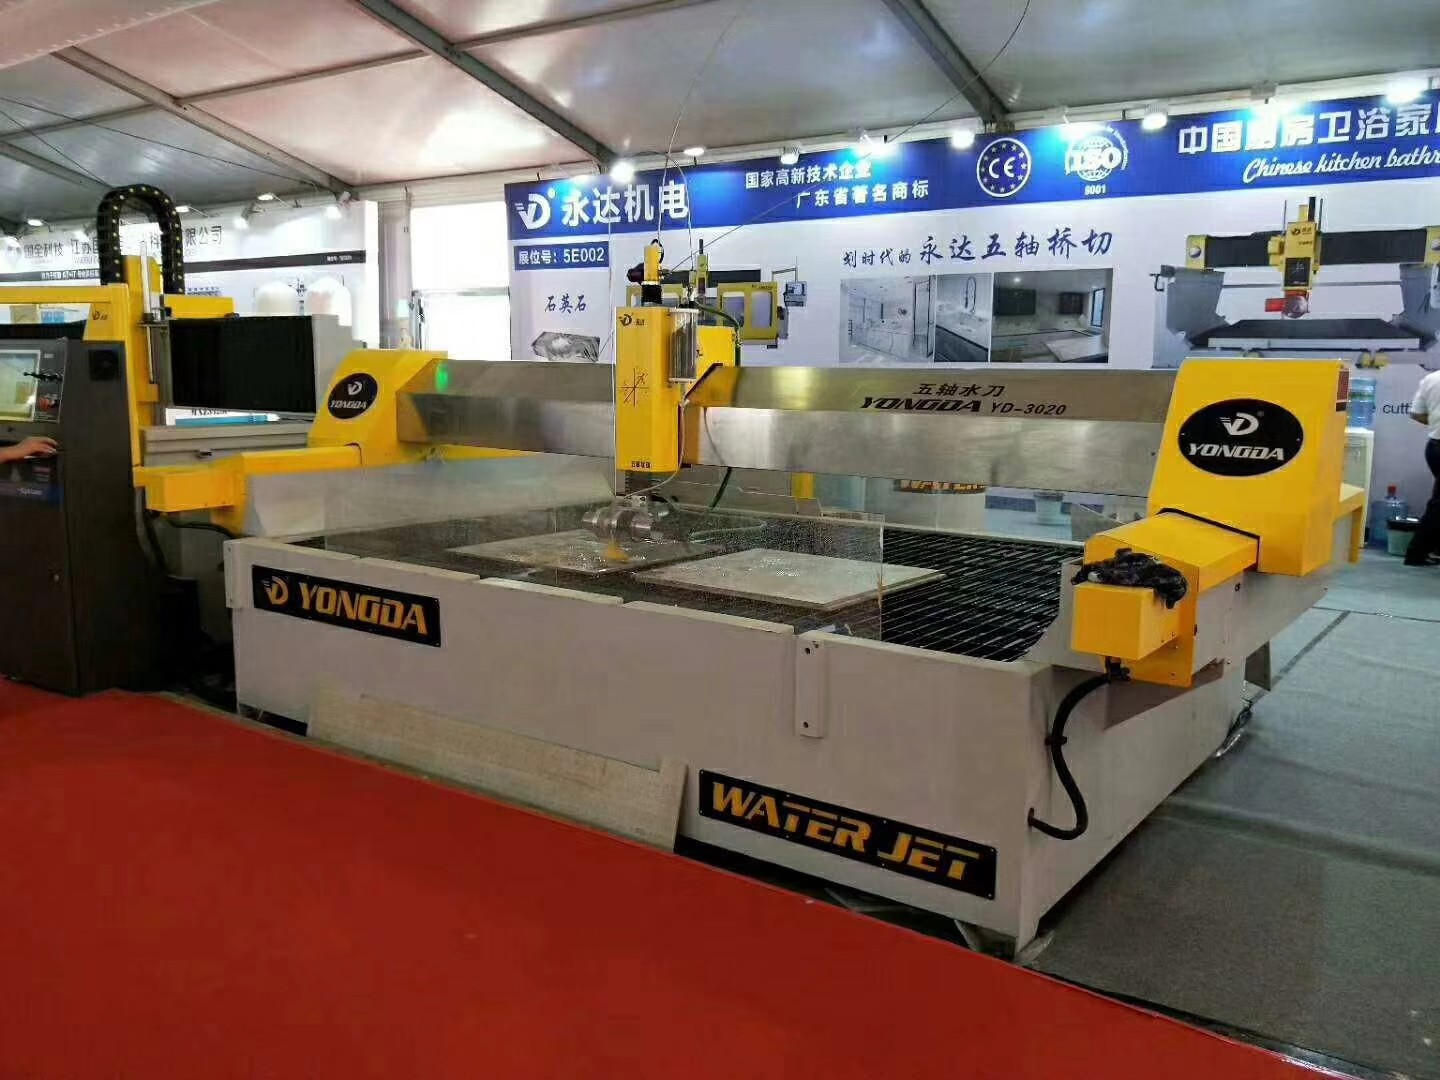 YONGDA-Advantages and disadvantages of Water Jet Cutting Machine